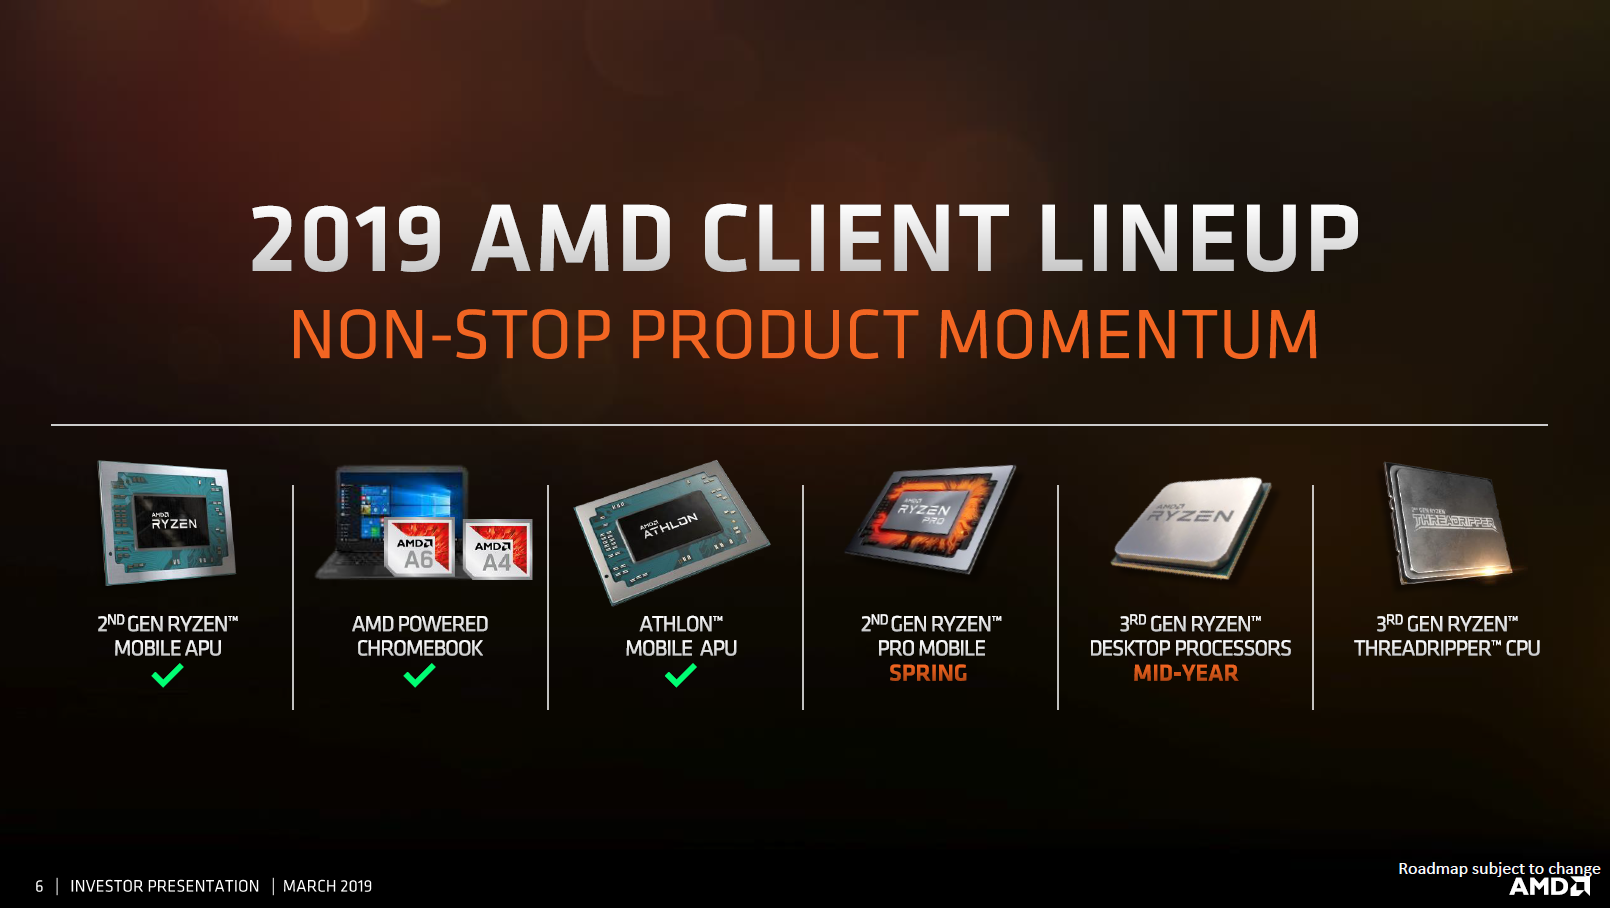 Amd Investor Presentation Roadmap Features 3rd Gen Ryzen Threadripper Cpu And Launch Period For Ryzen 3000 Series Notebookcheck Net News